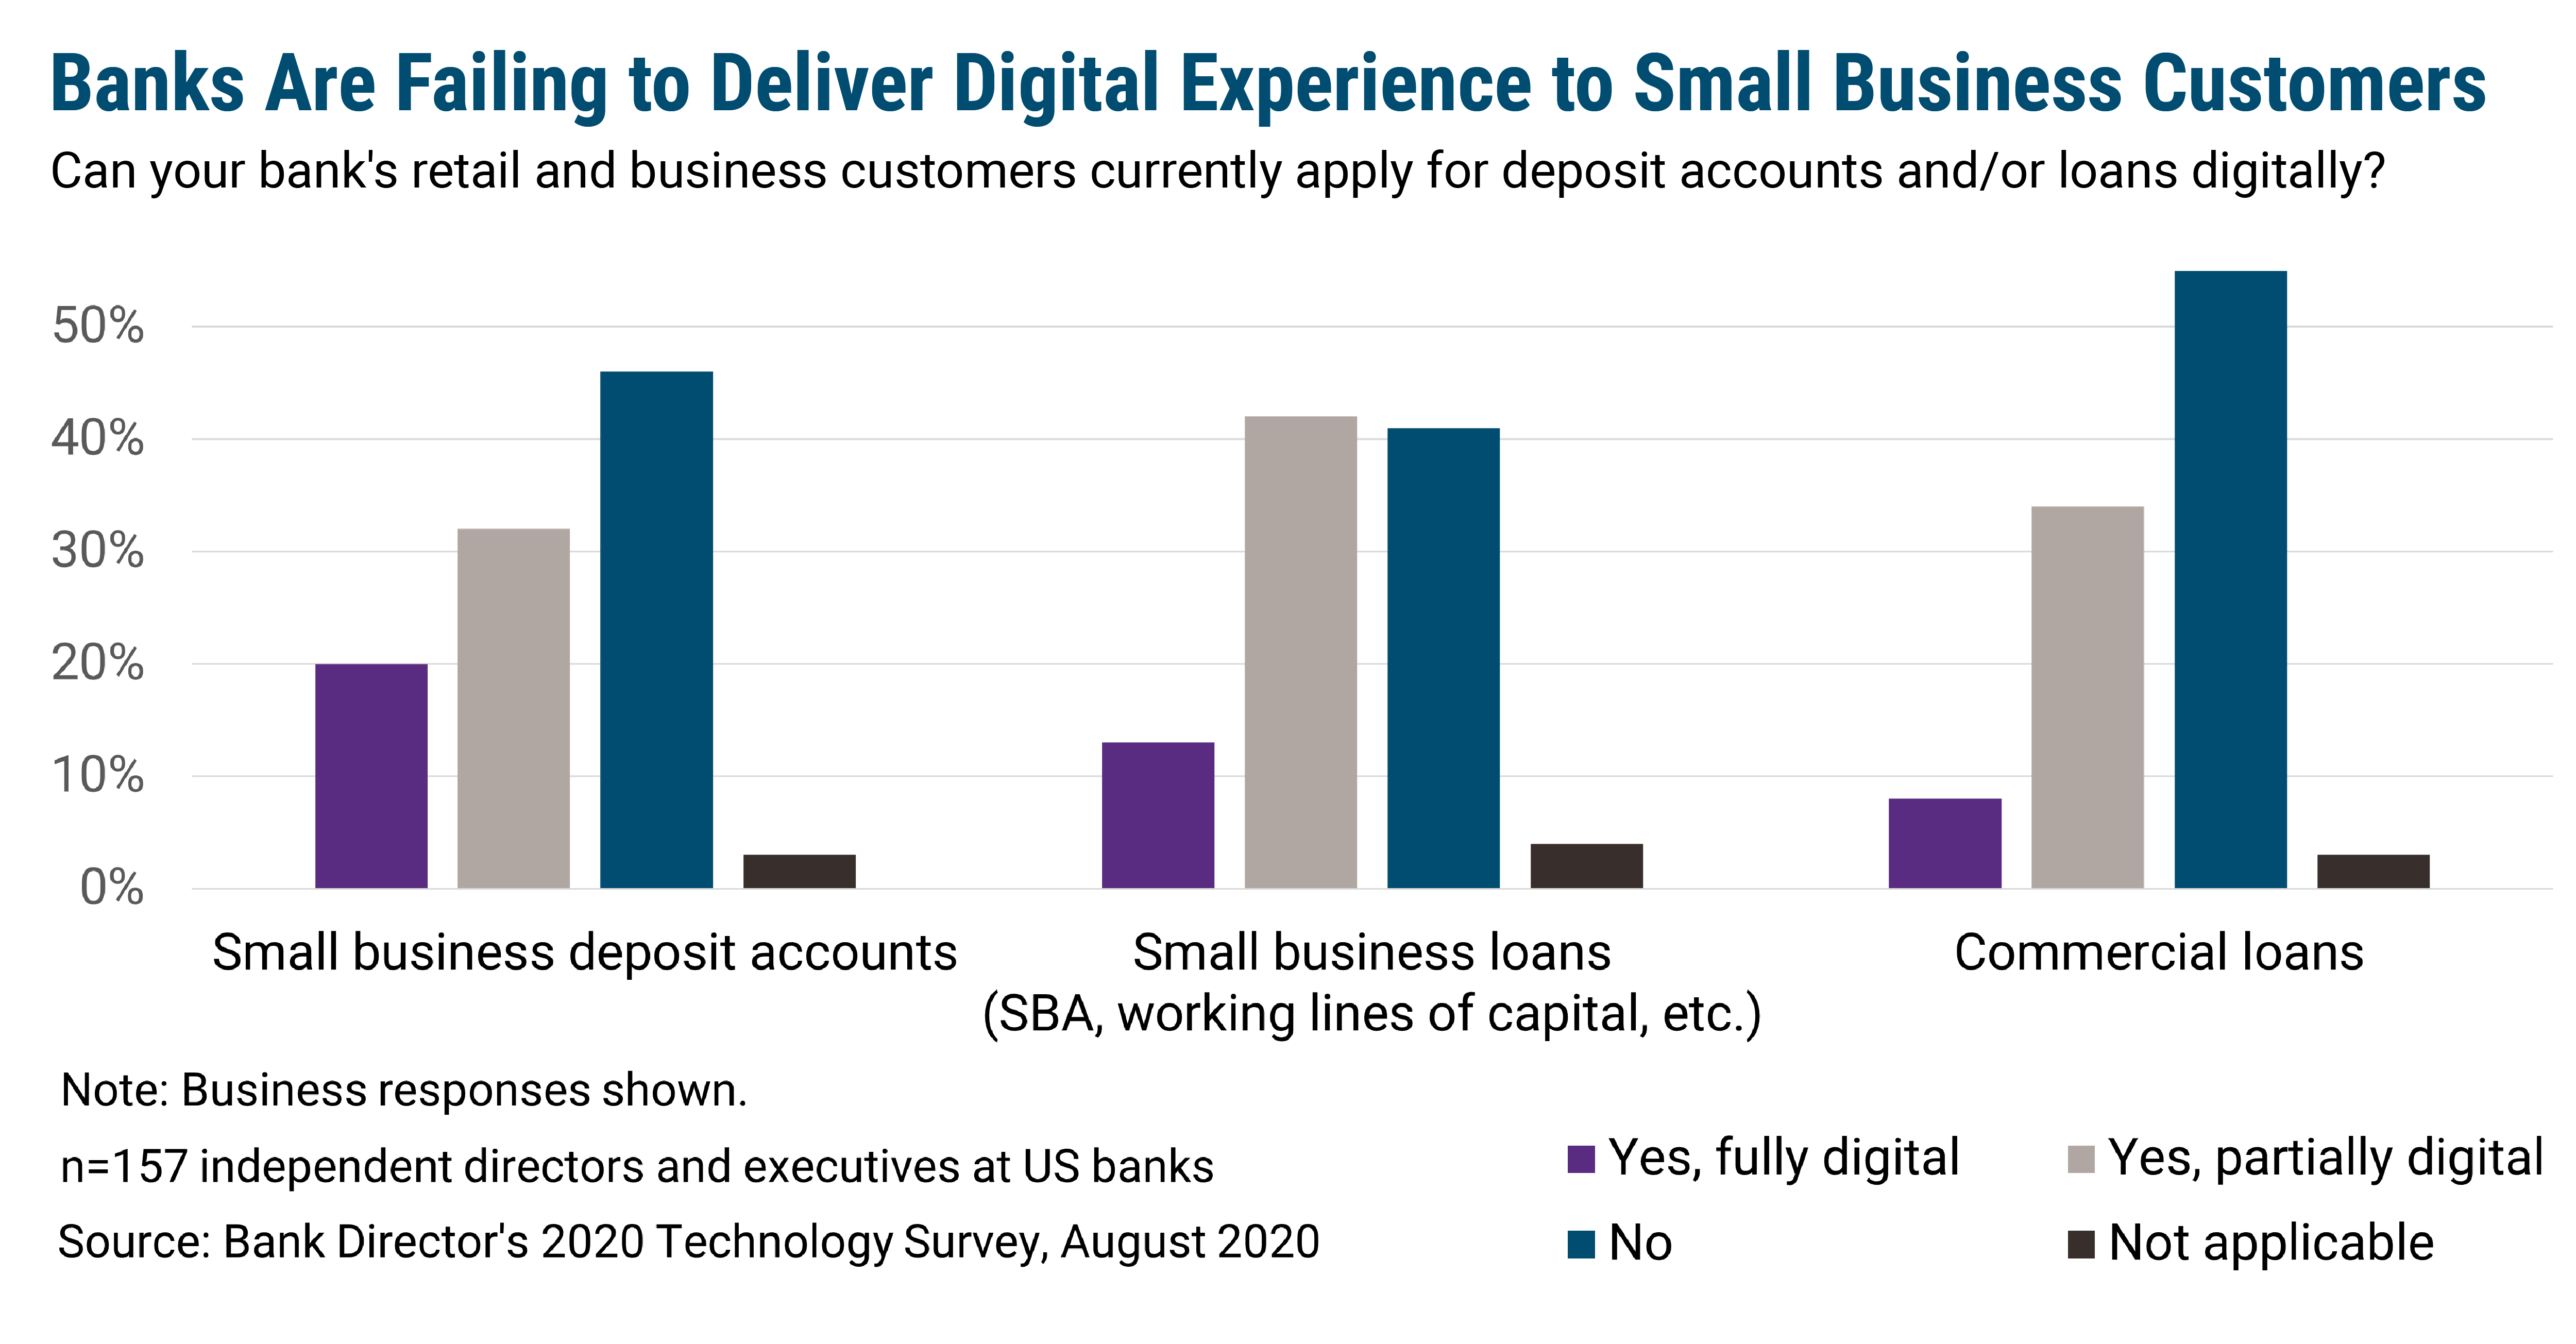 Banks Are Failing to Deliver Digital Experience to Small Business Customers